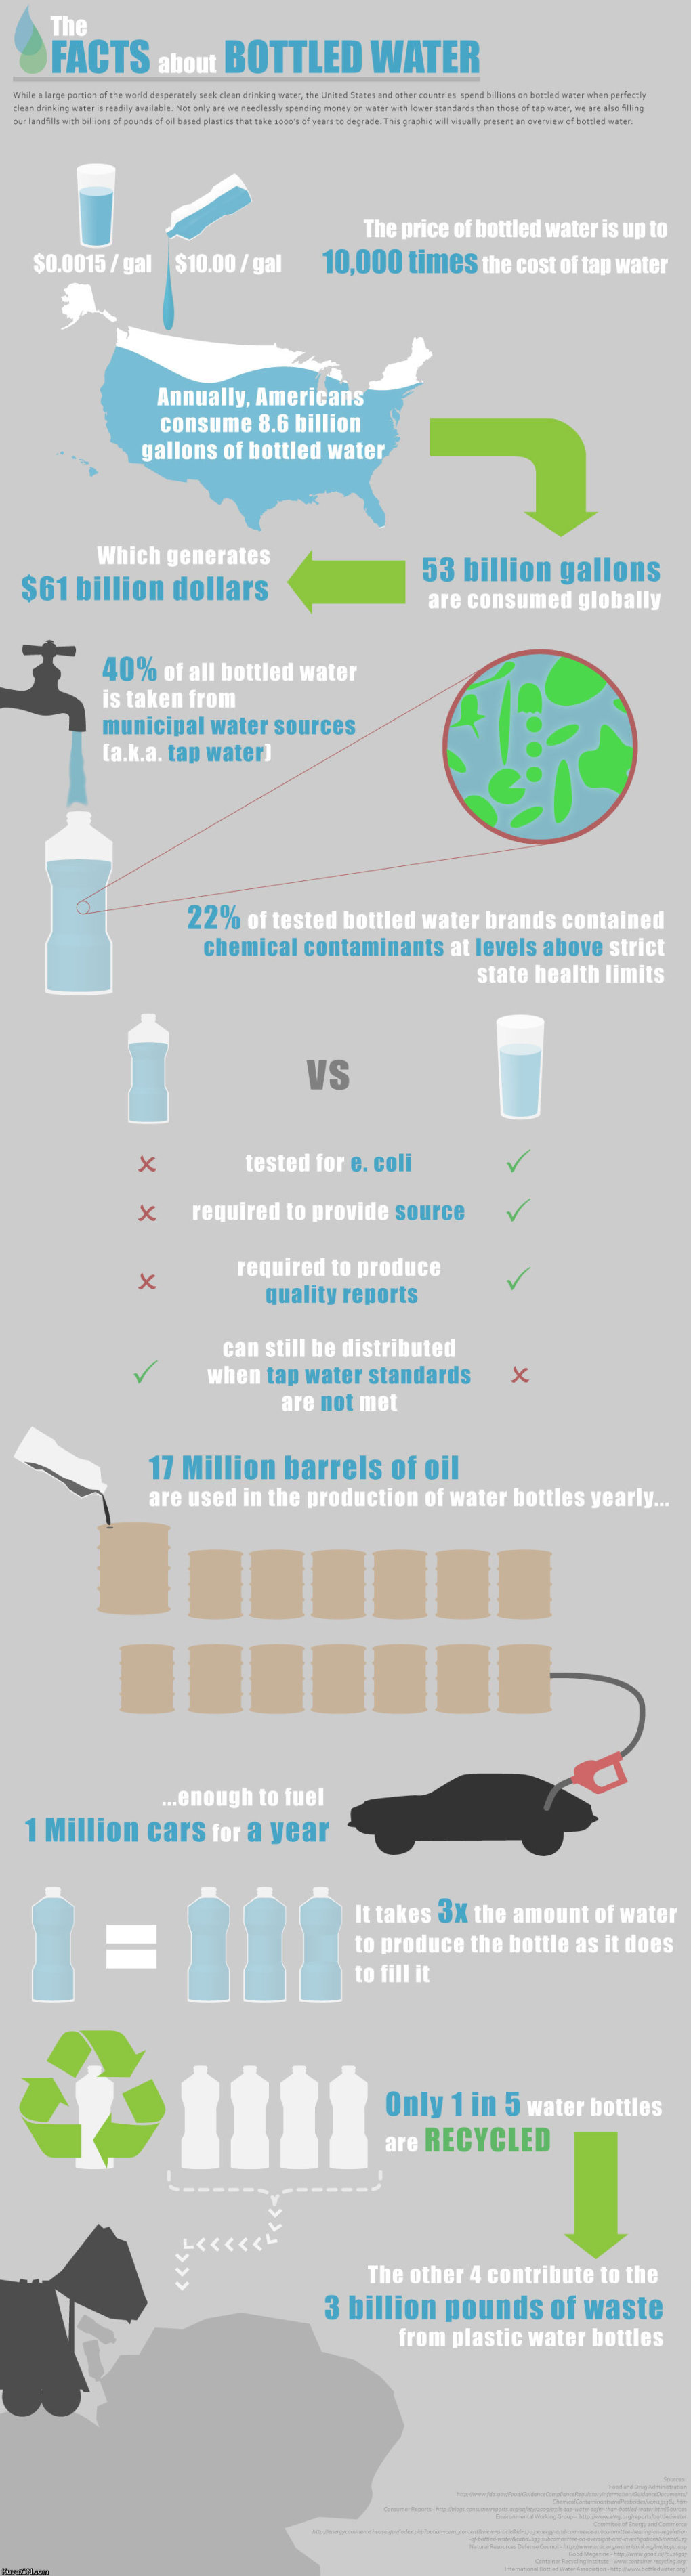 facts bottled water